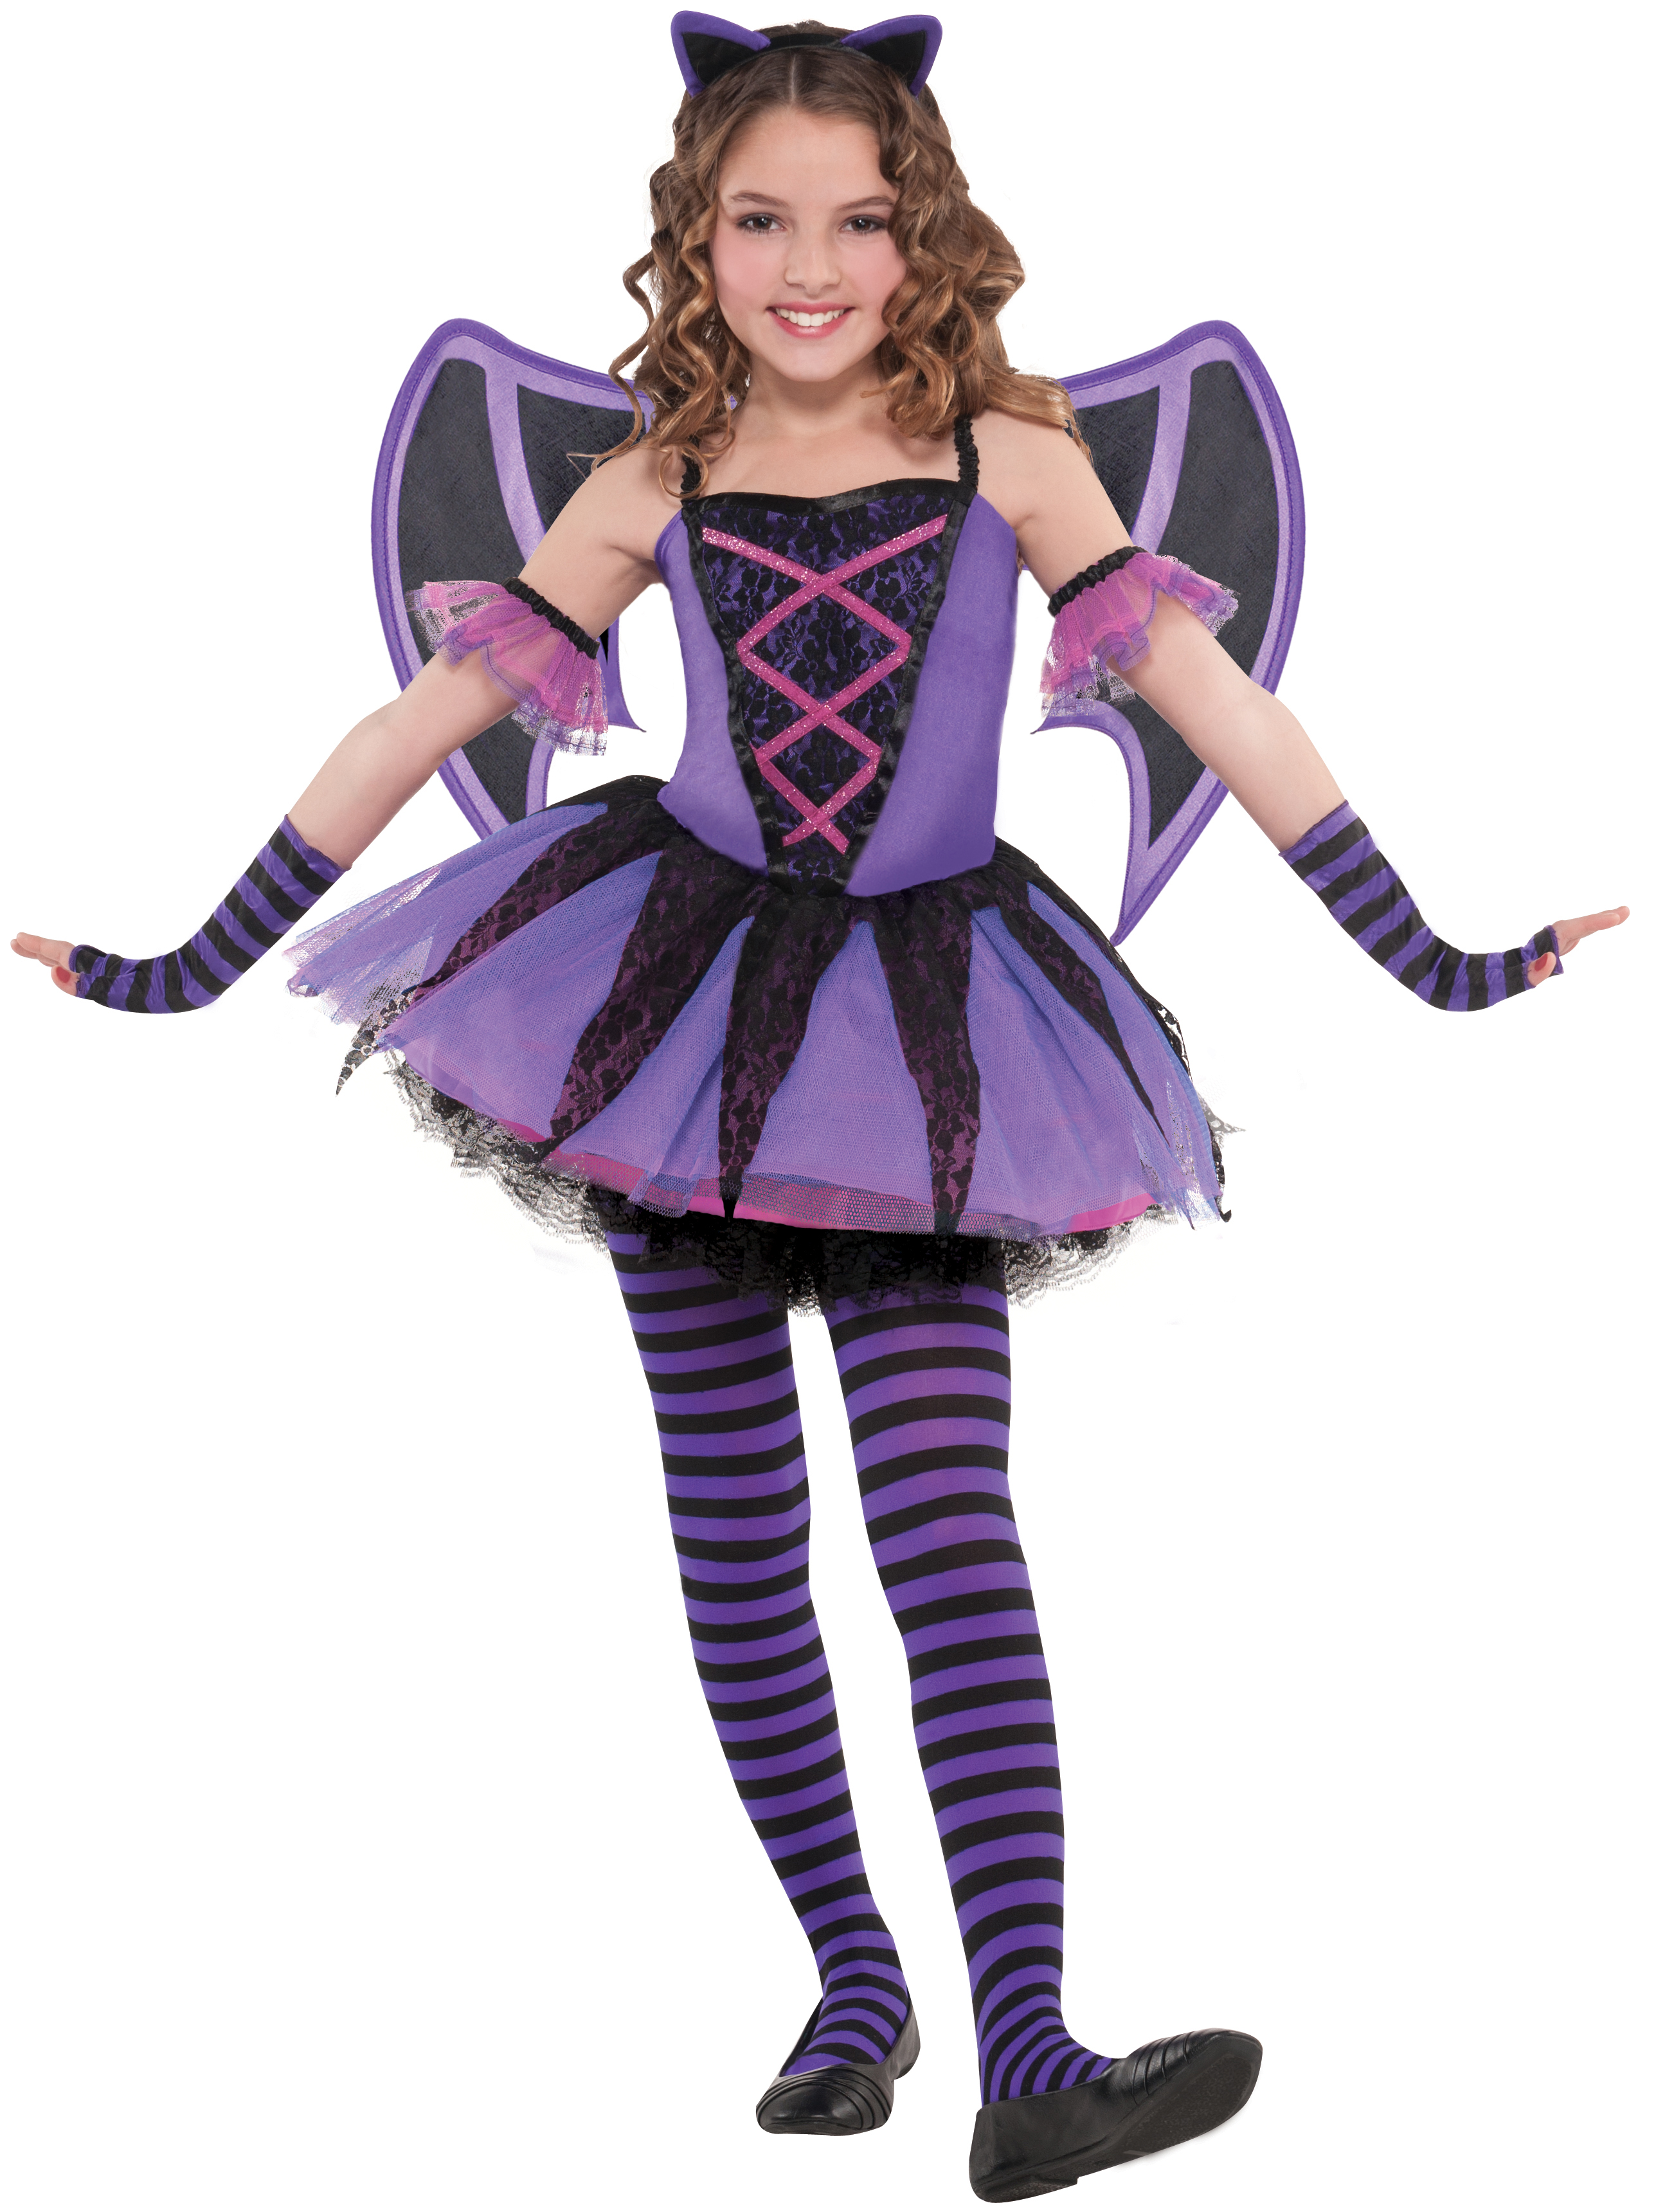 sentinel ballerina bat wings age 3 10 girls halloween fancy dress childs kids costume